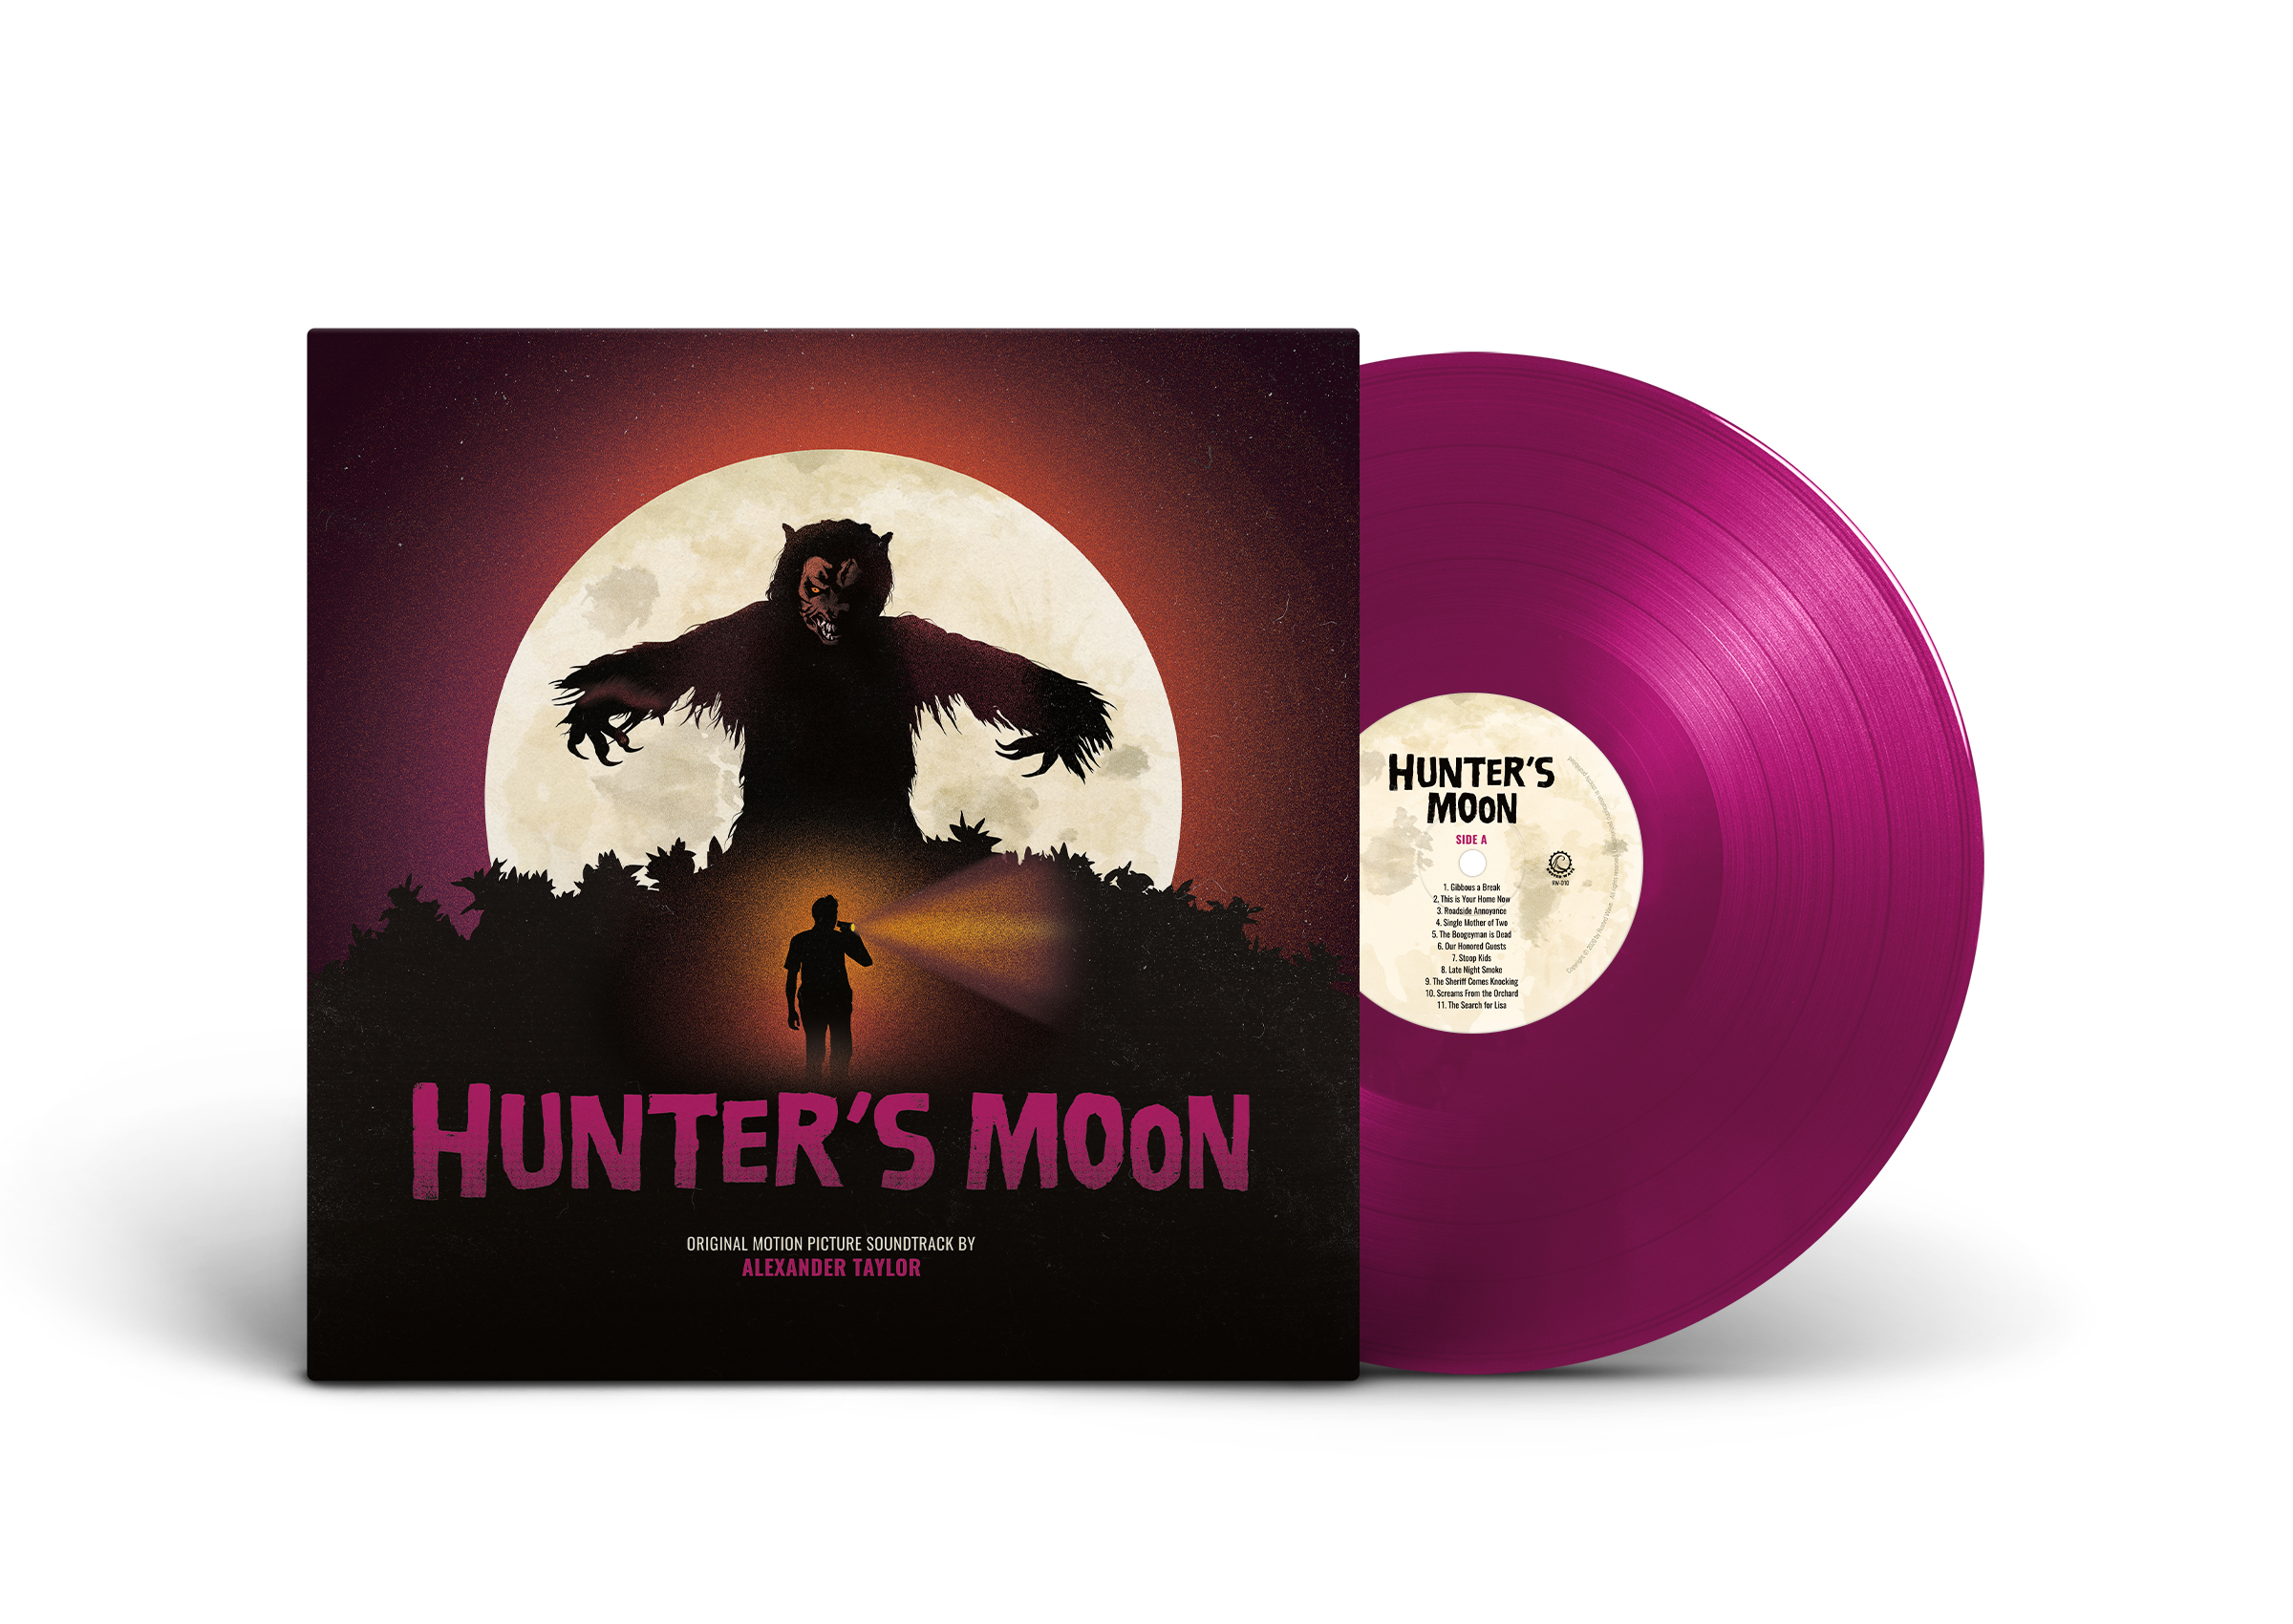 Hunter's Moon (Original Motion Picture Soundtrack)